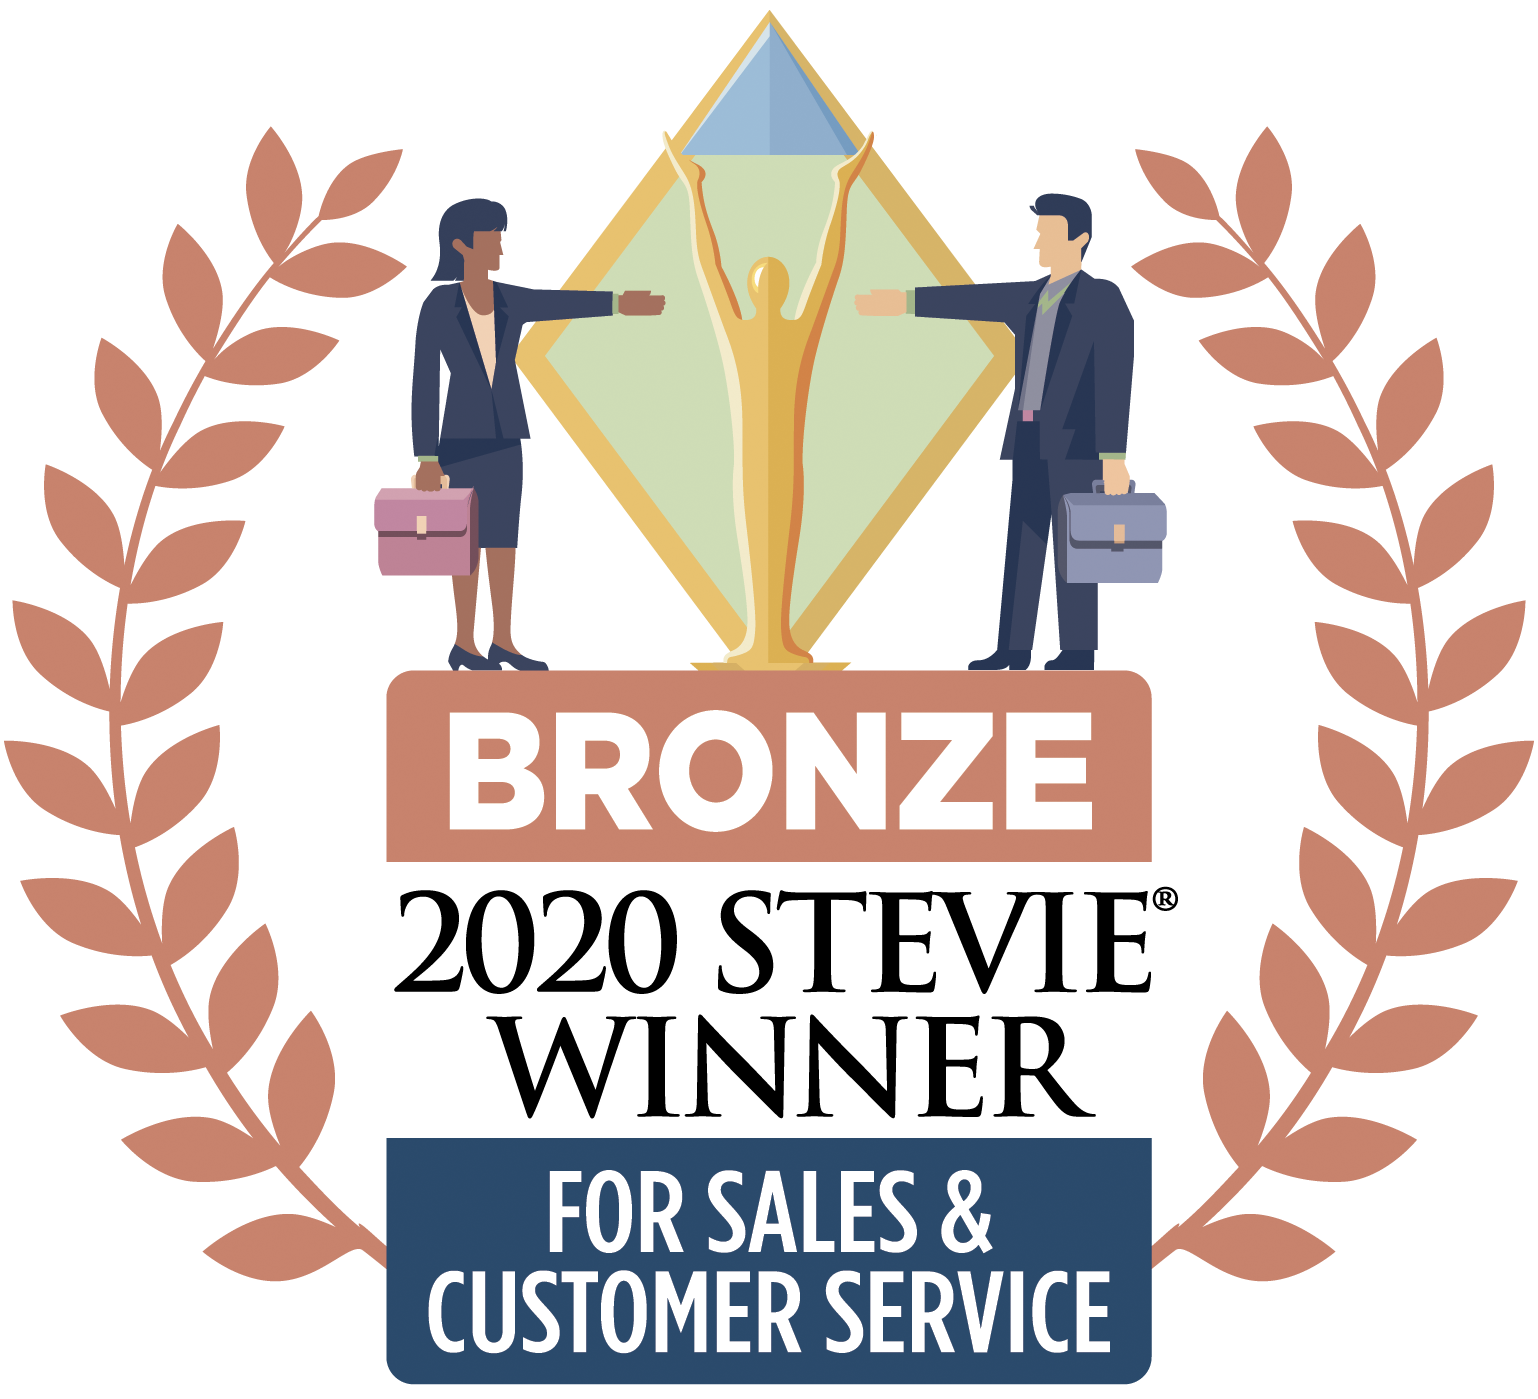 2020 Stevie Winner for Sales and Customer Service - Bronze